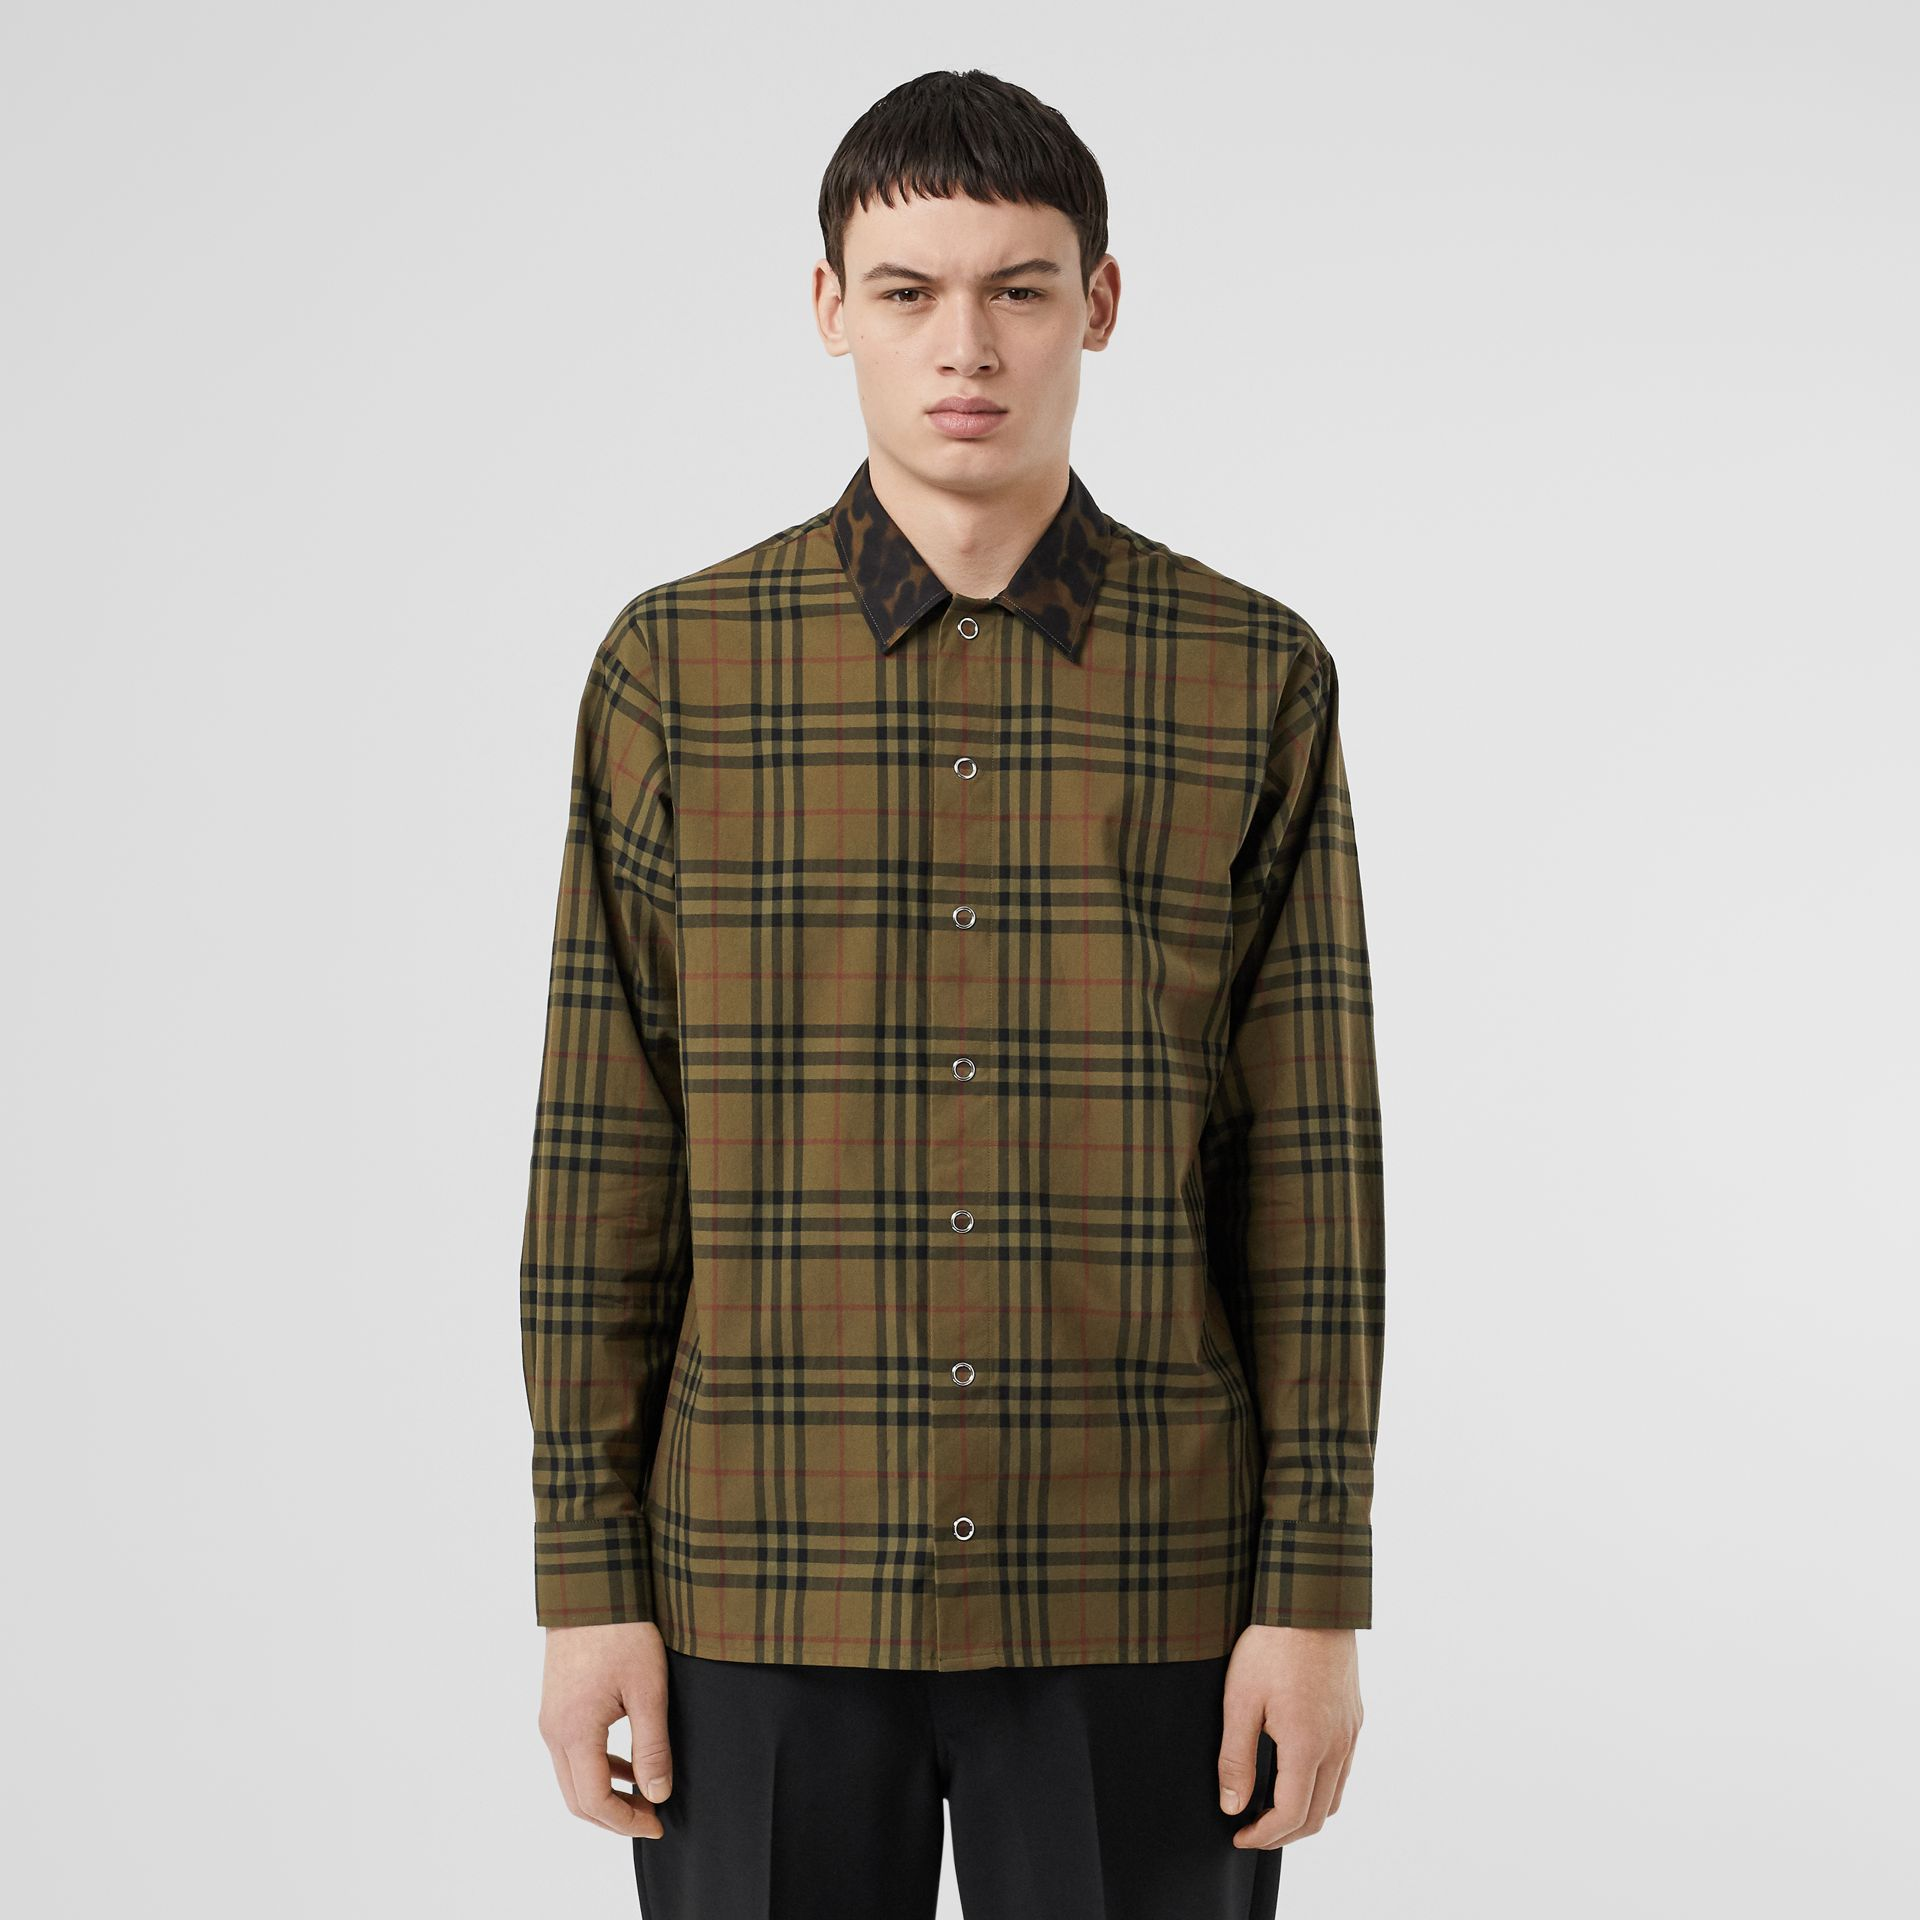 Contrast Collar Vintage Check Cotton Shirt in Army Green | Burberry - gallery image 0